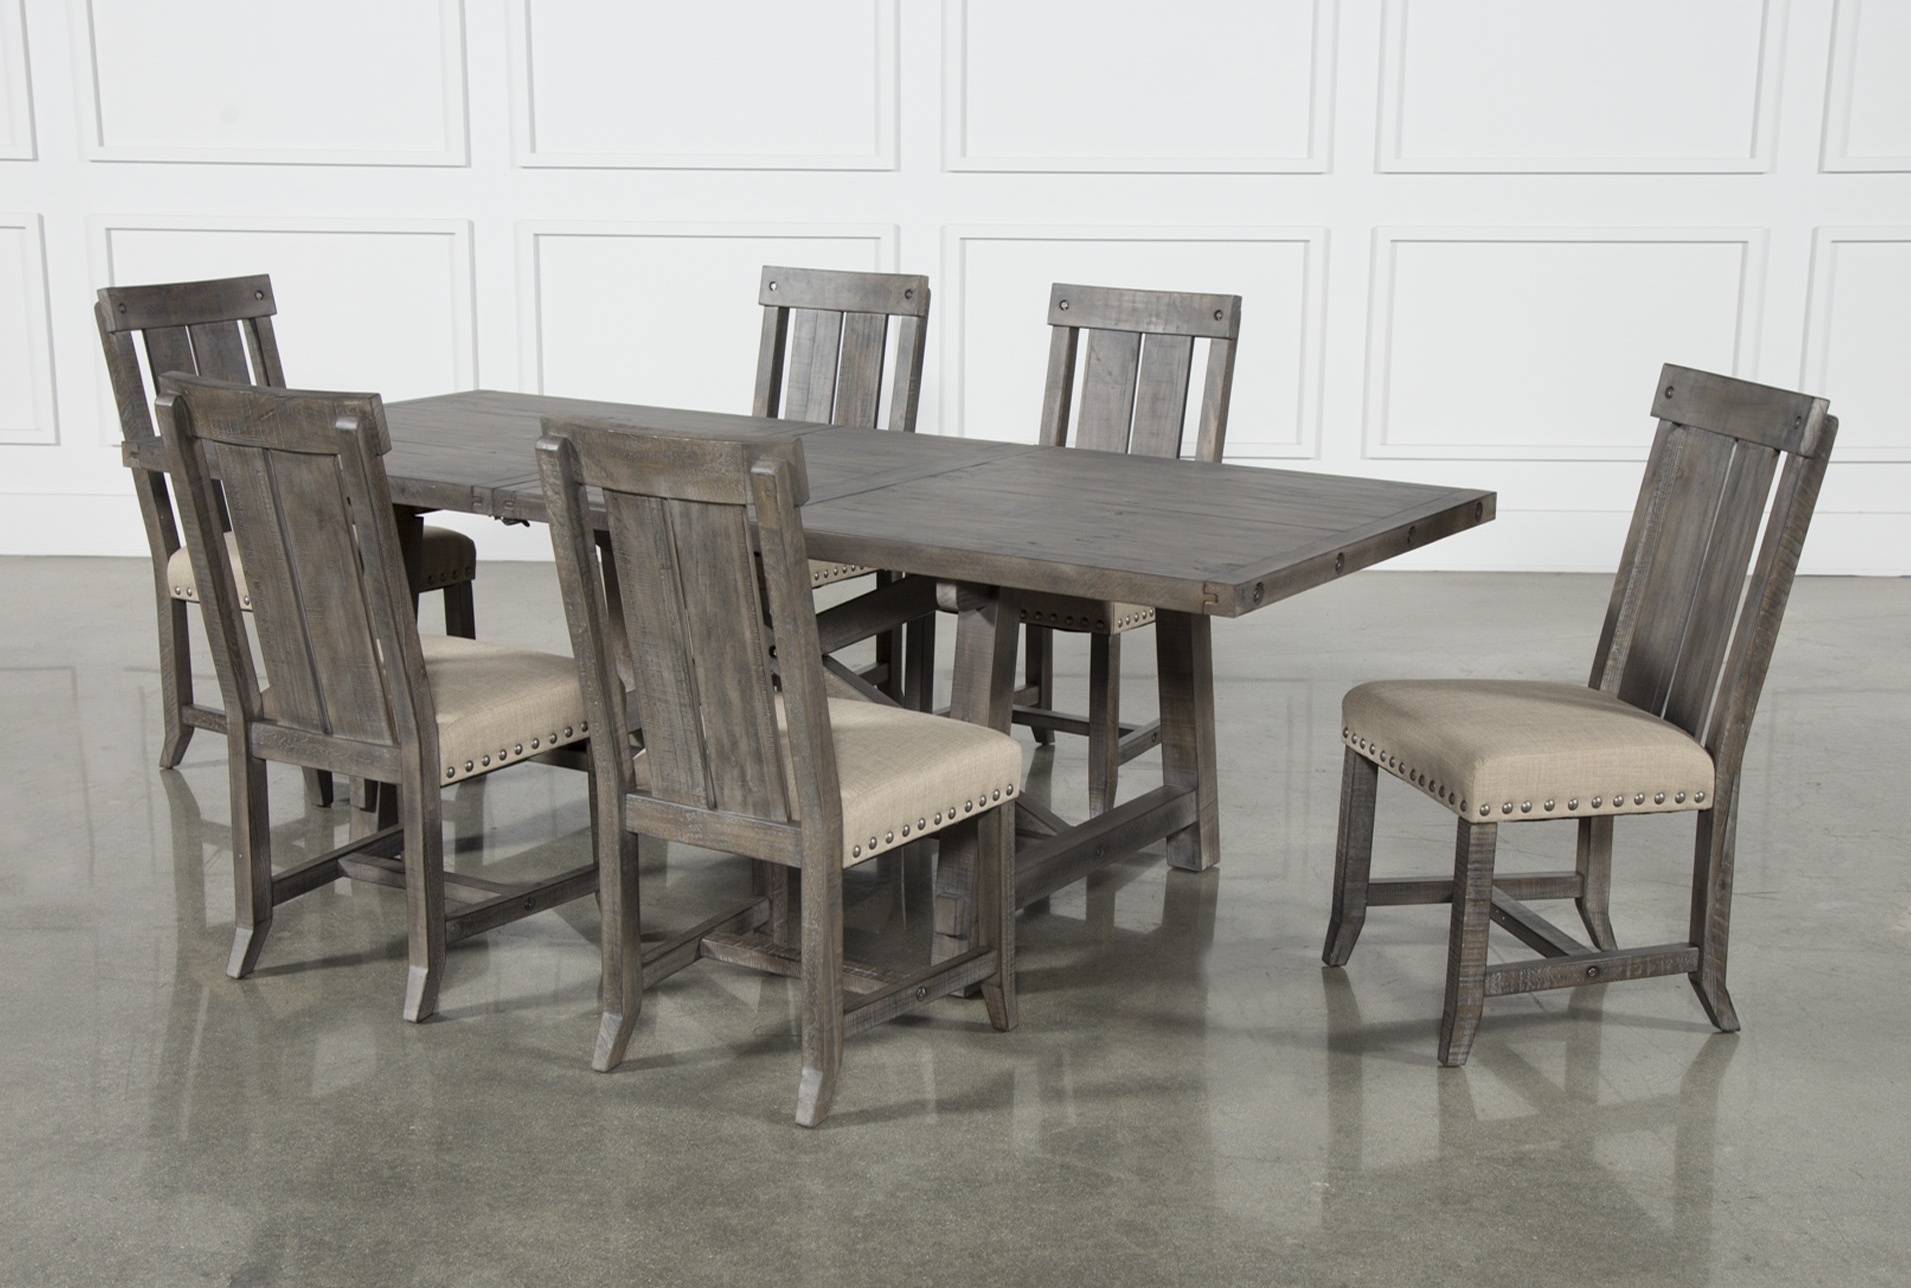 Jaxon Grey 7 Piece Rectangle Extension Dining Set W/wood Chairs With Regard To Most Recently Released Jaxon Grey Rectangle Extension Dining Tables (View 9 of 25)